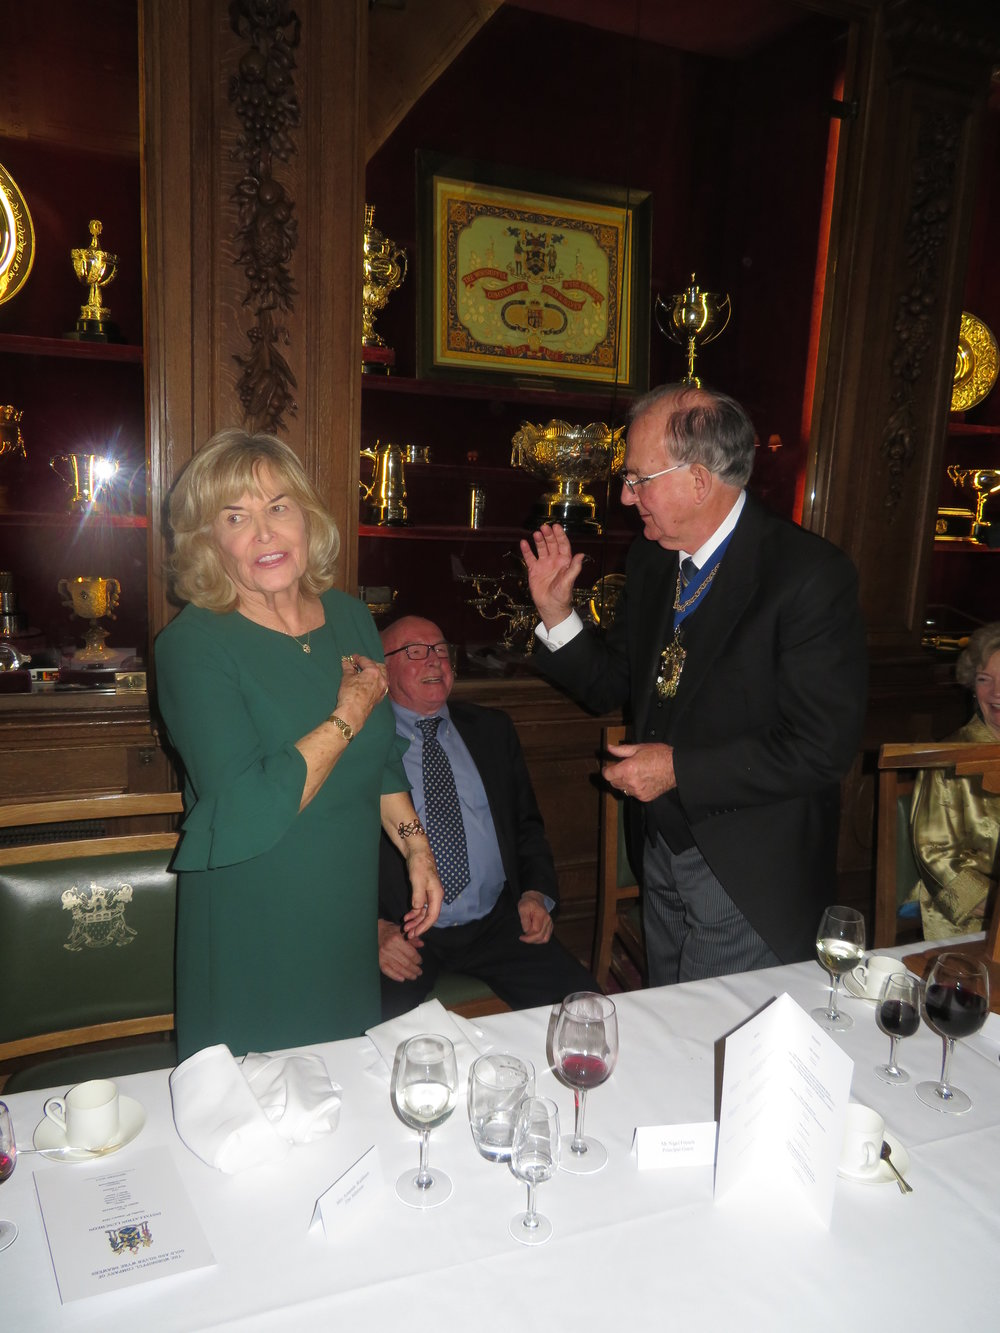 The Mistress receiving her badge from The Master